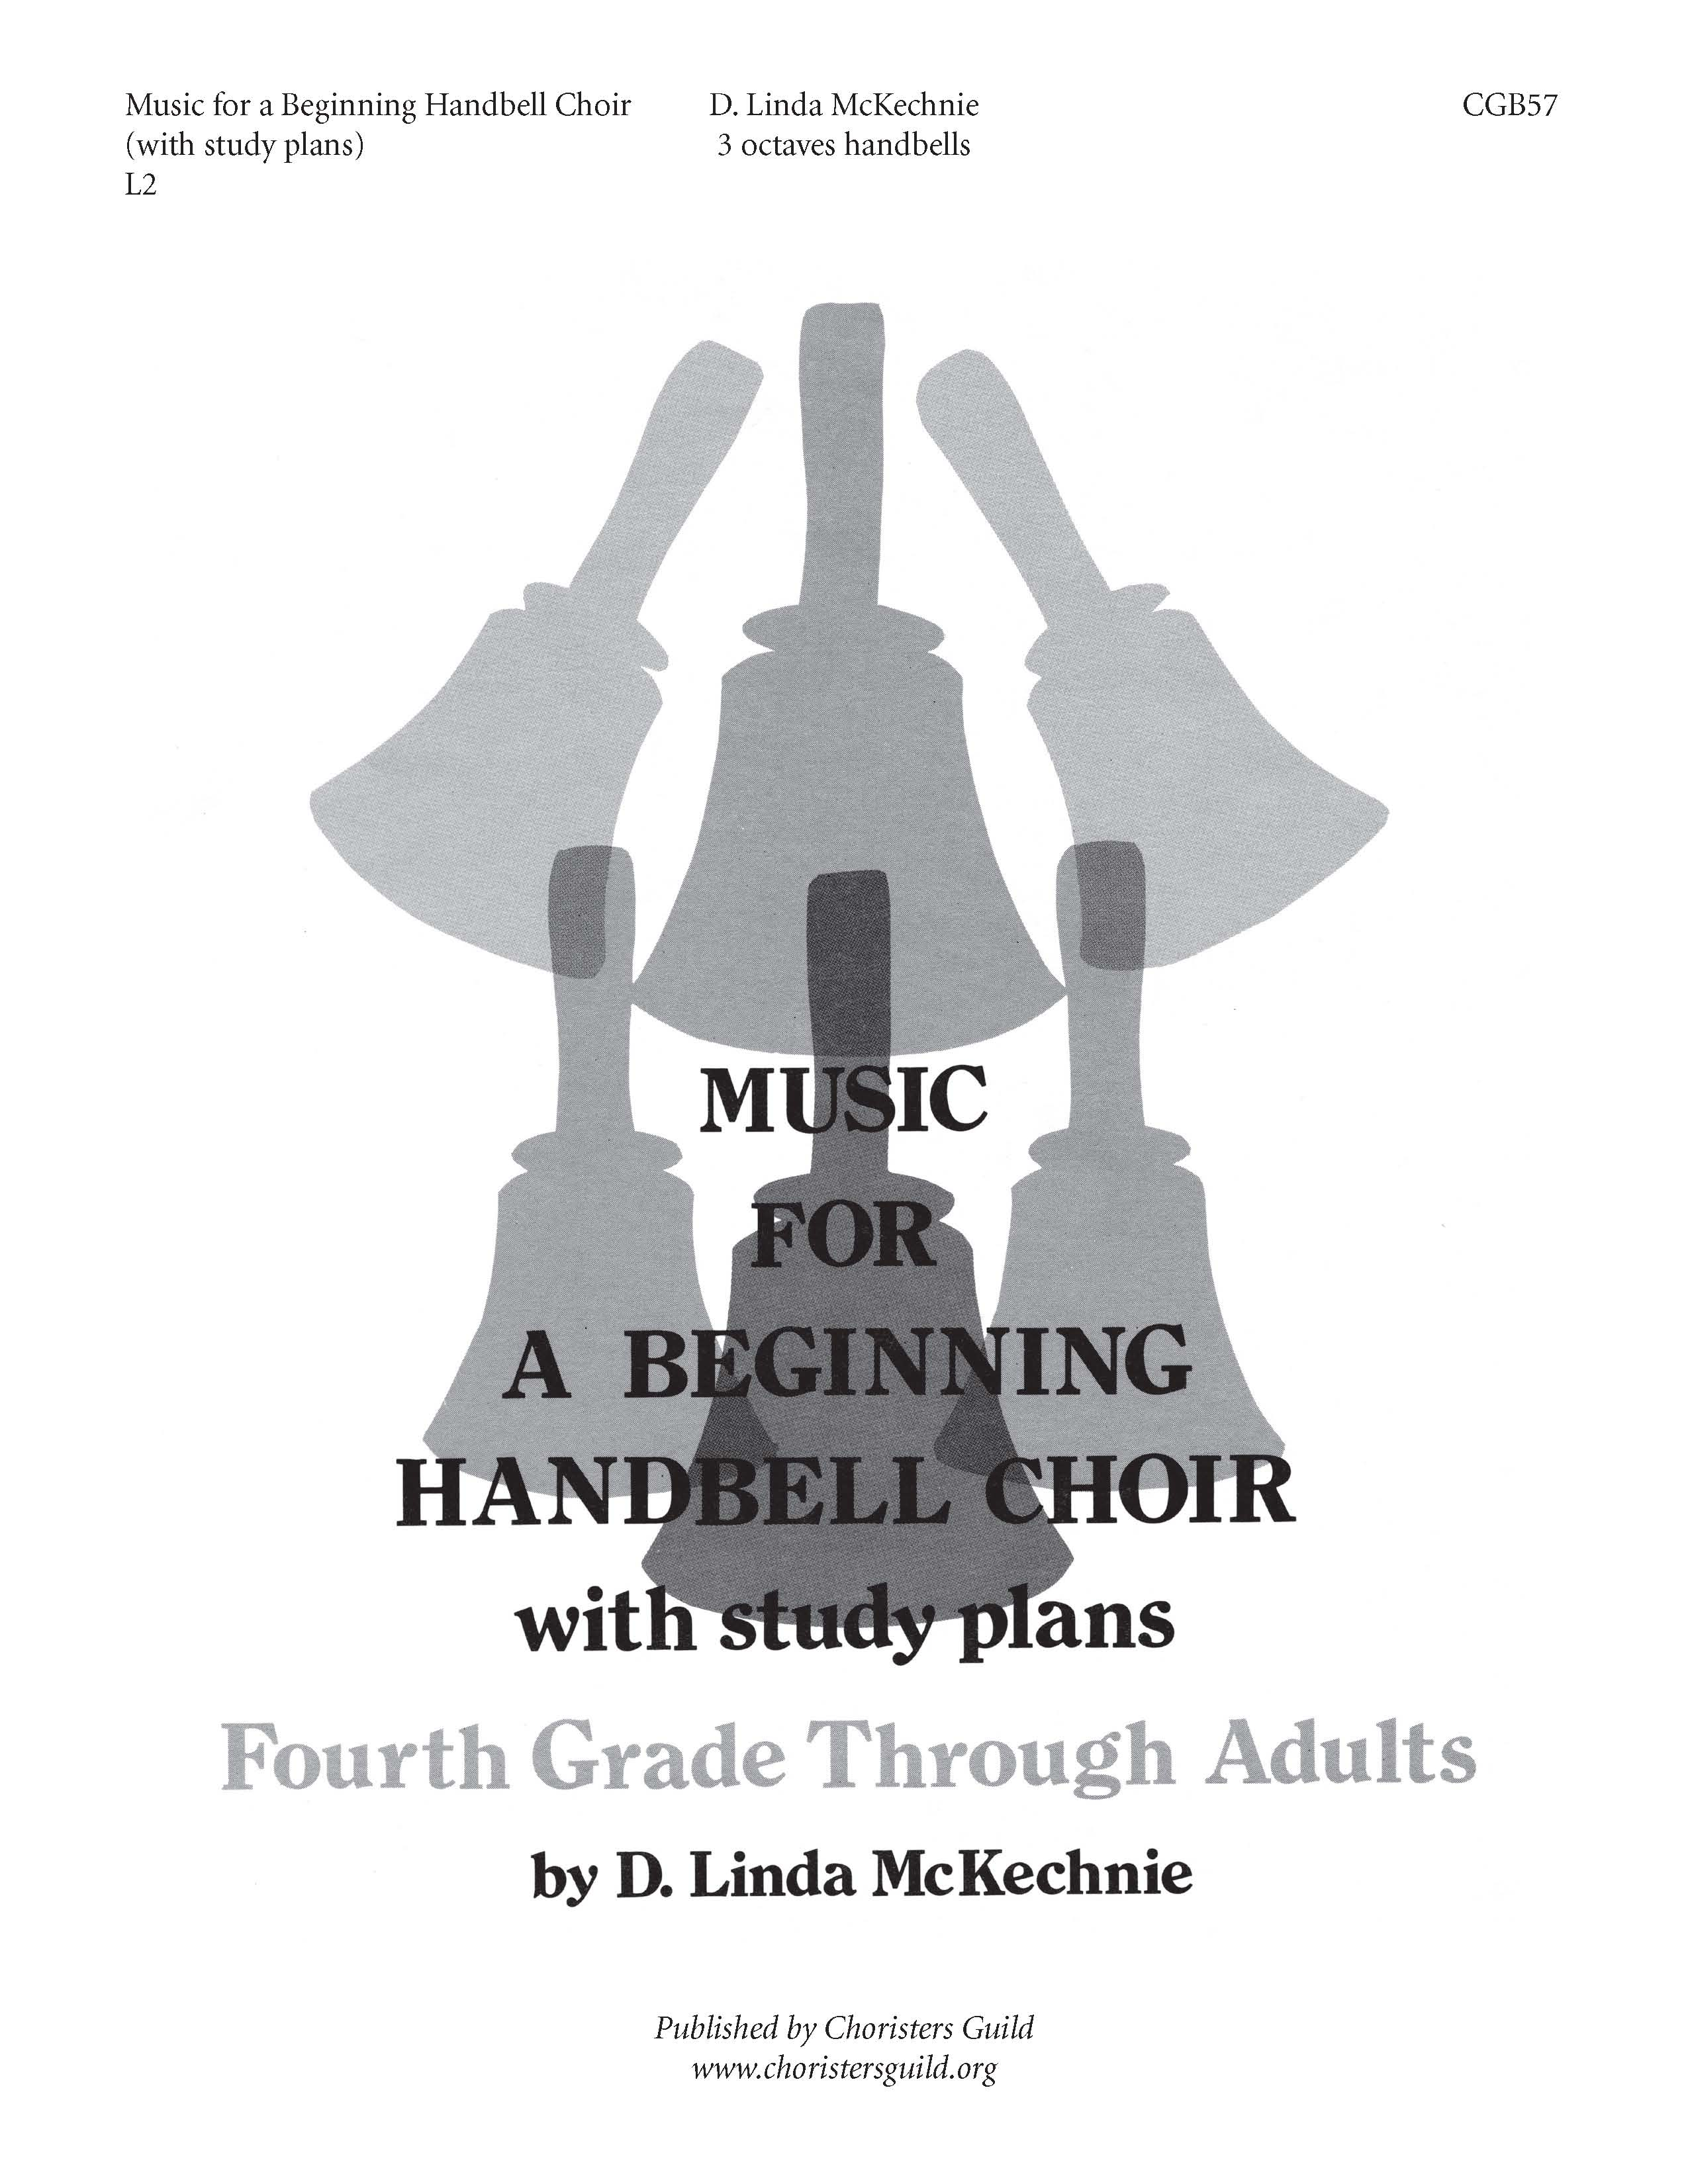 Music for a Beginning Handbell Choir with Study Plans